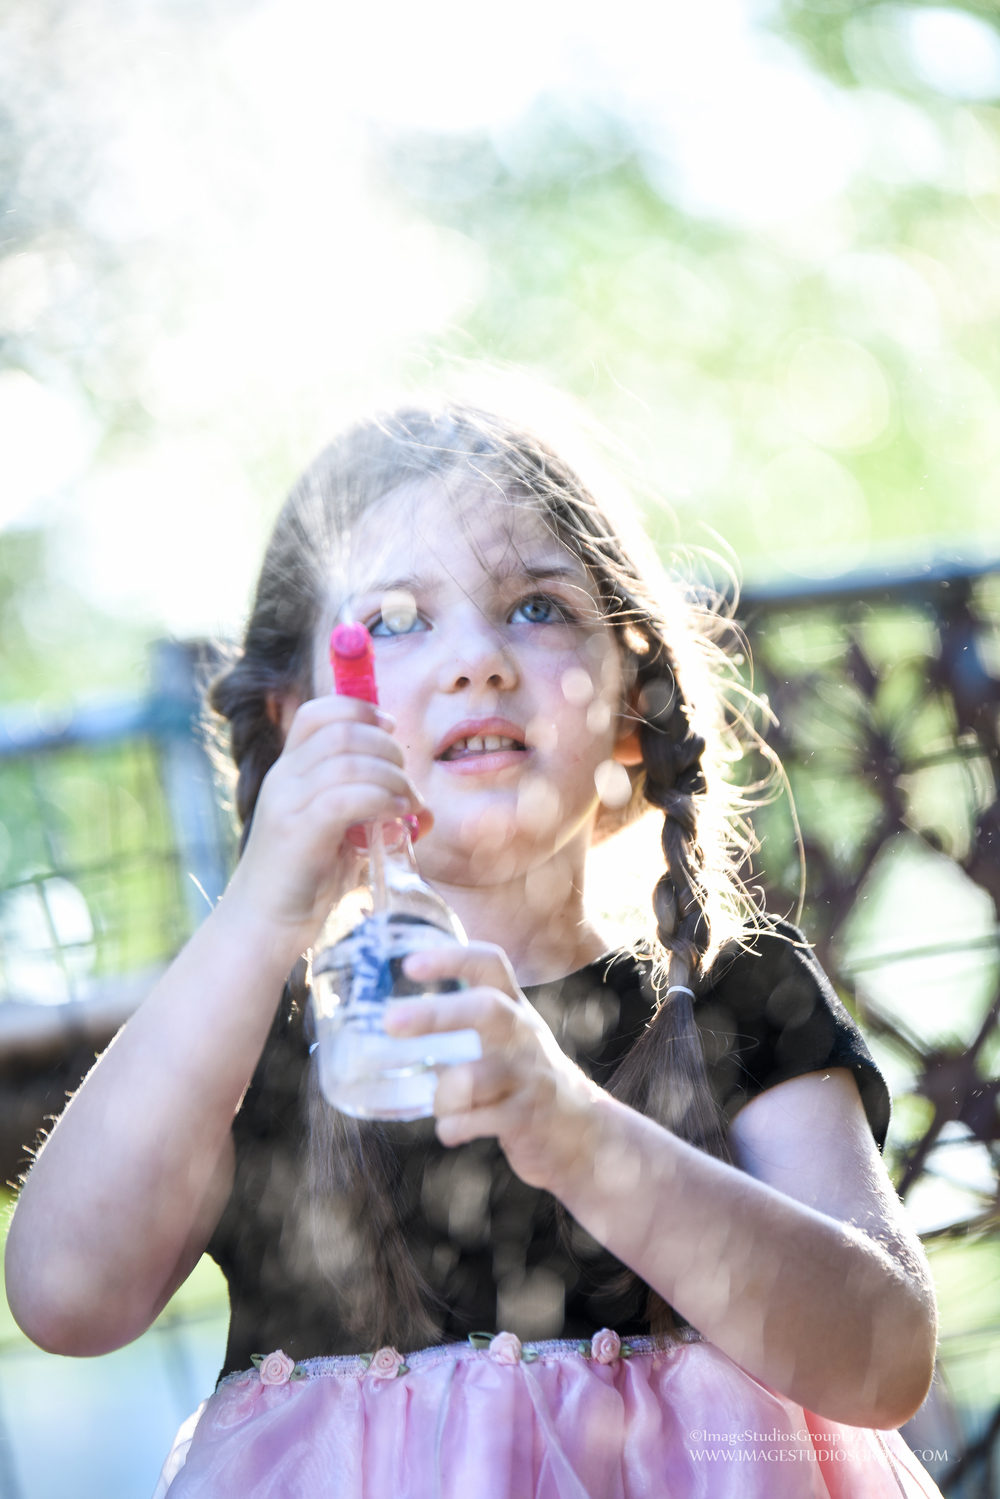 ©ISG-active-child-photography (25 of 34).jpg